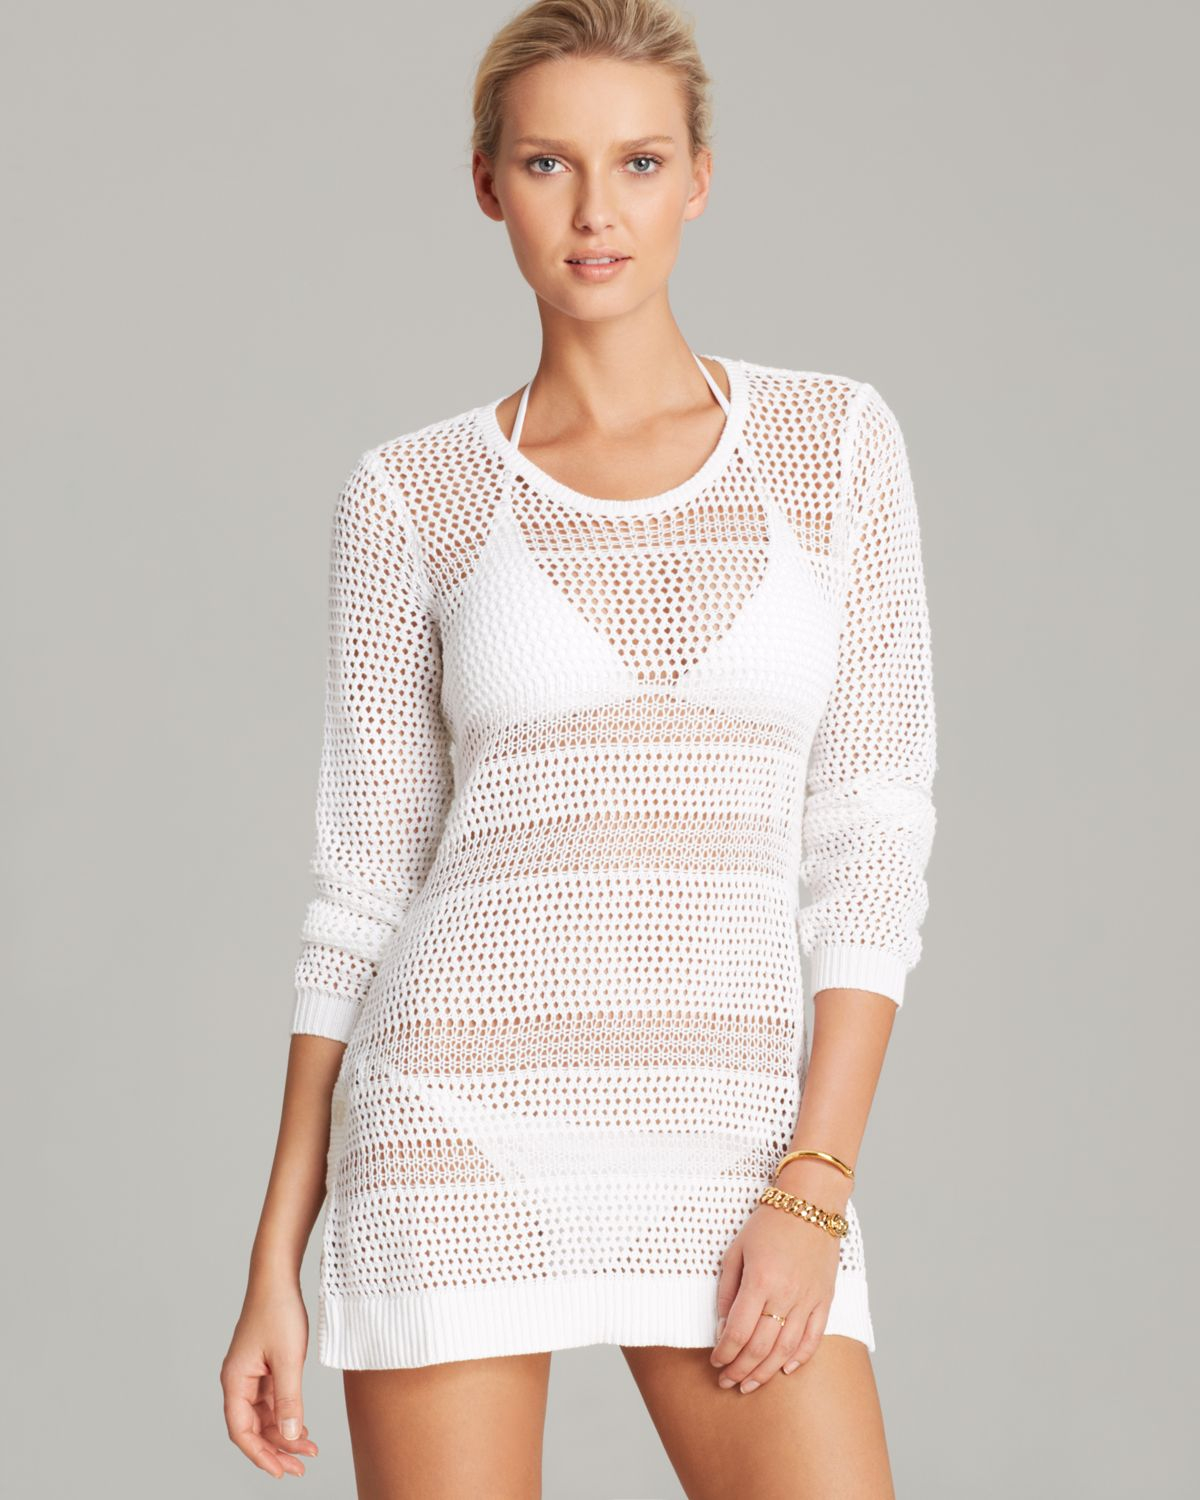 8b7cad86d62a0 Tommy Bahama Beach Sweater with Side Buttons Swim Cover Up in White ...